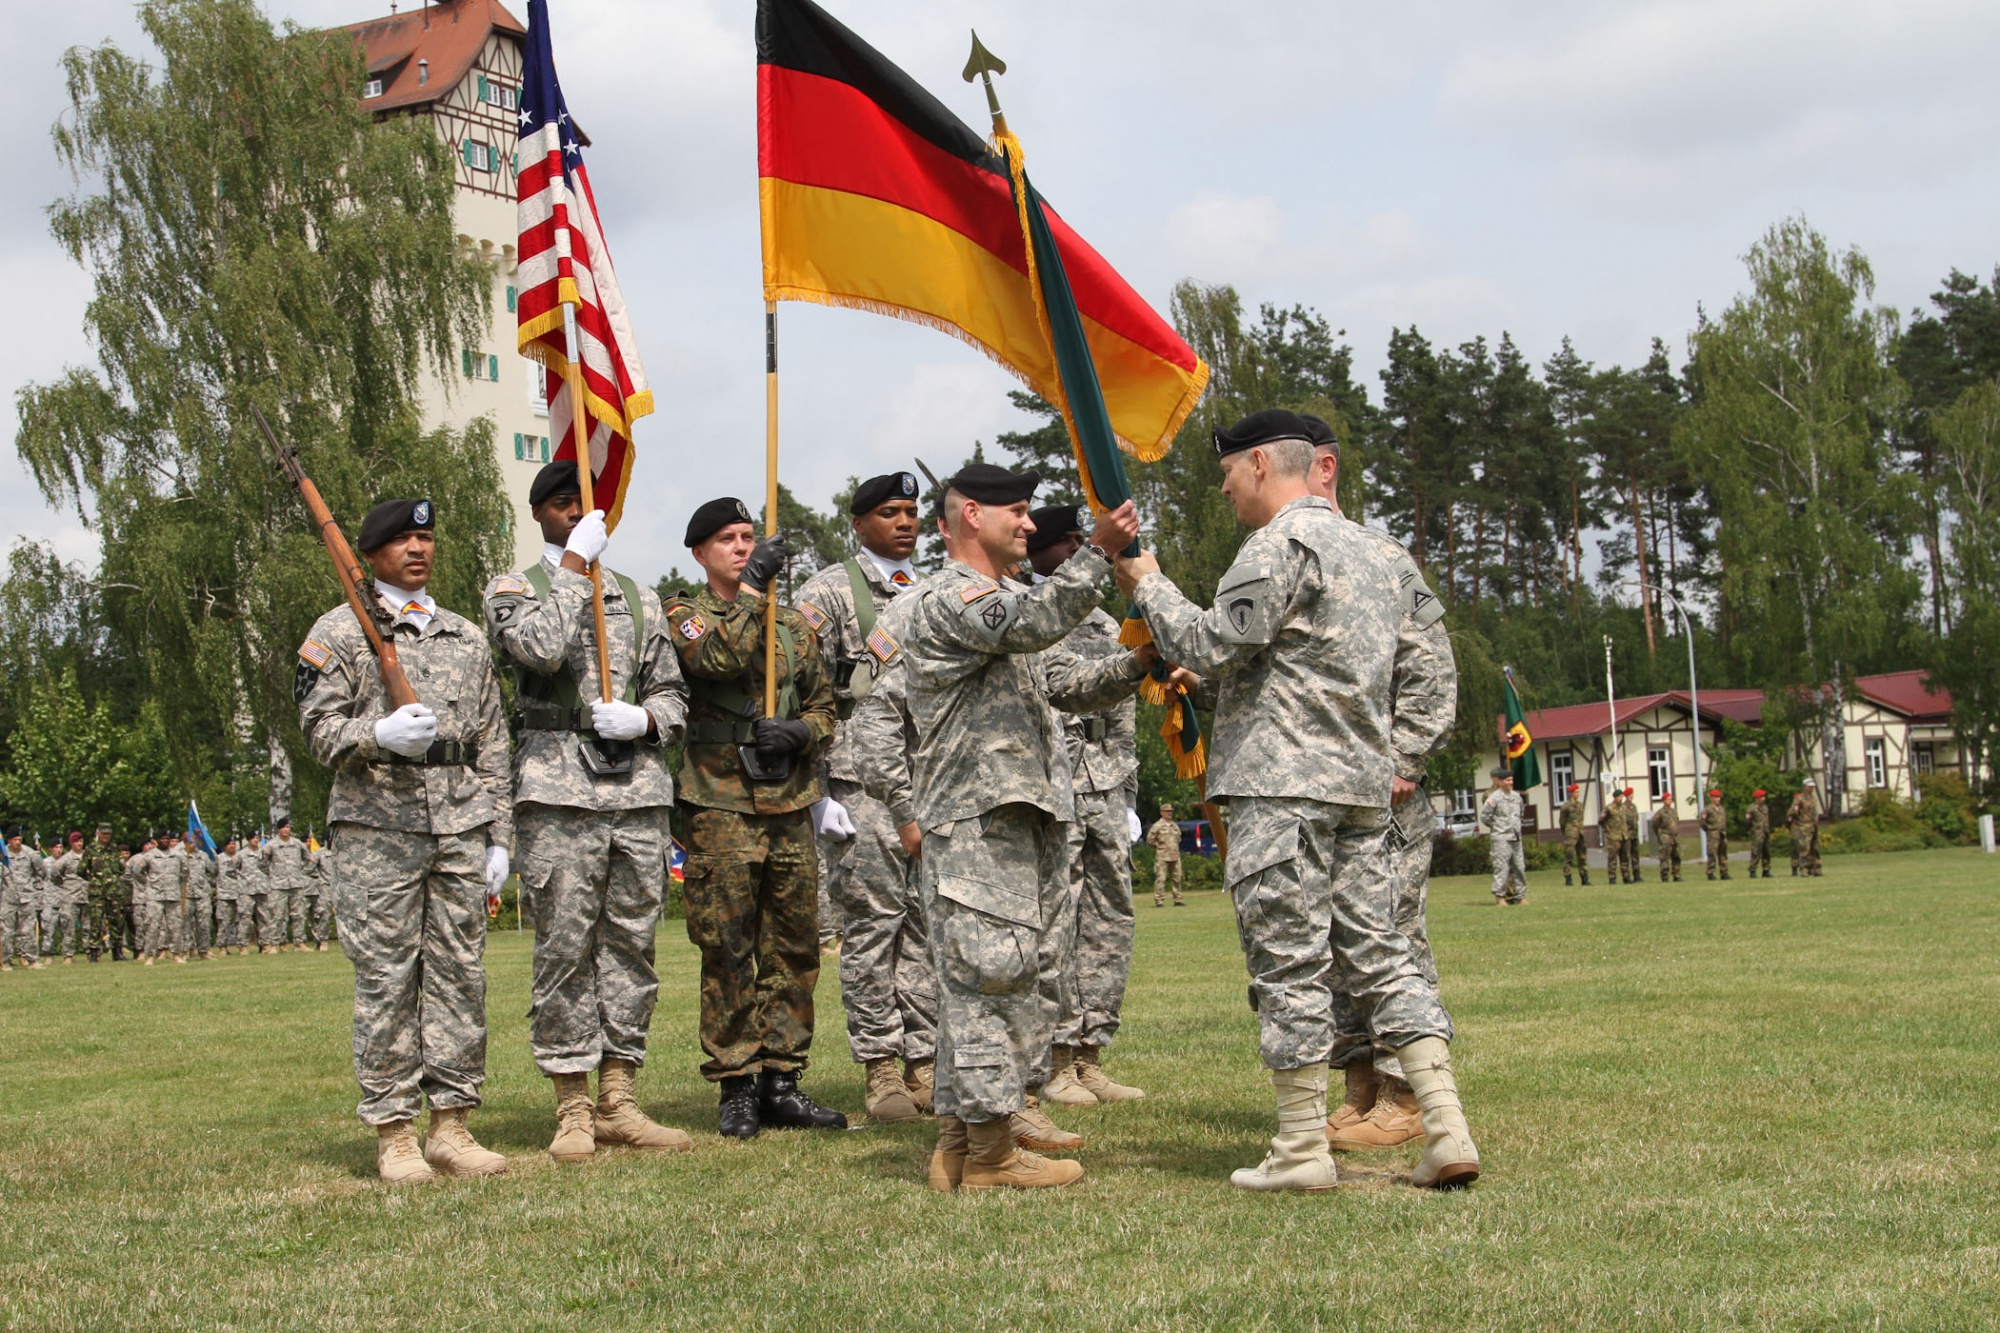 US troops out of Germany